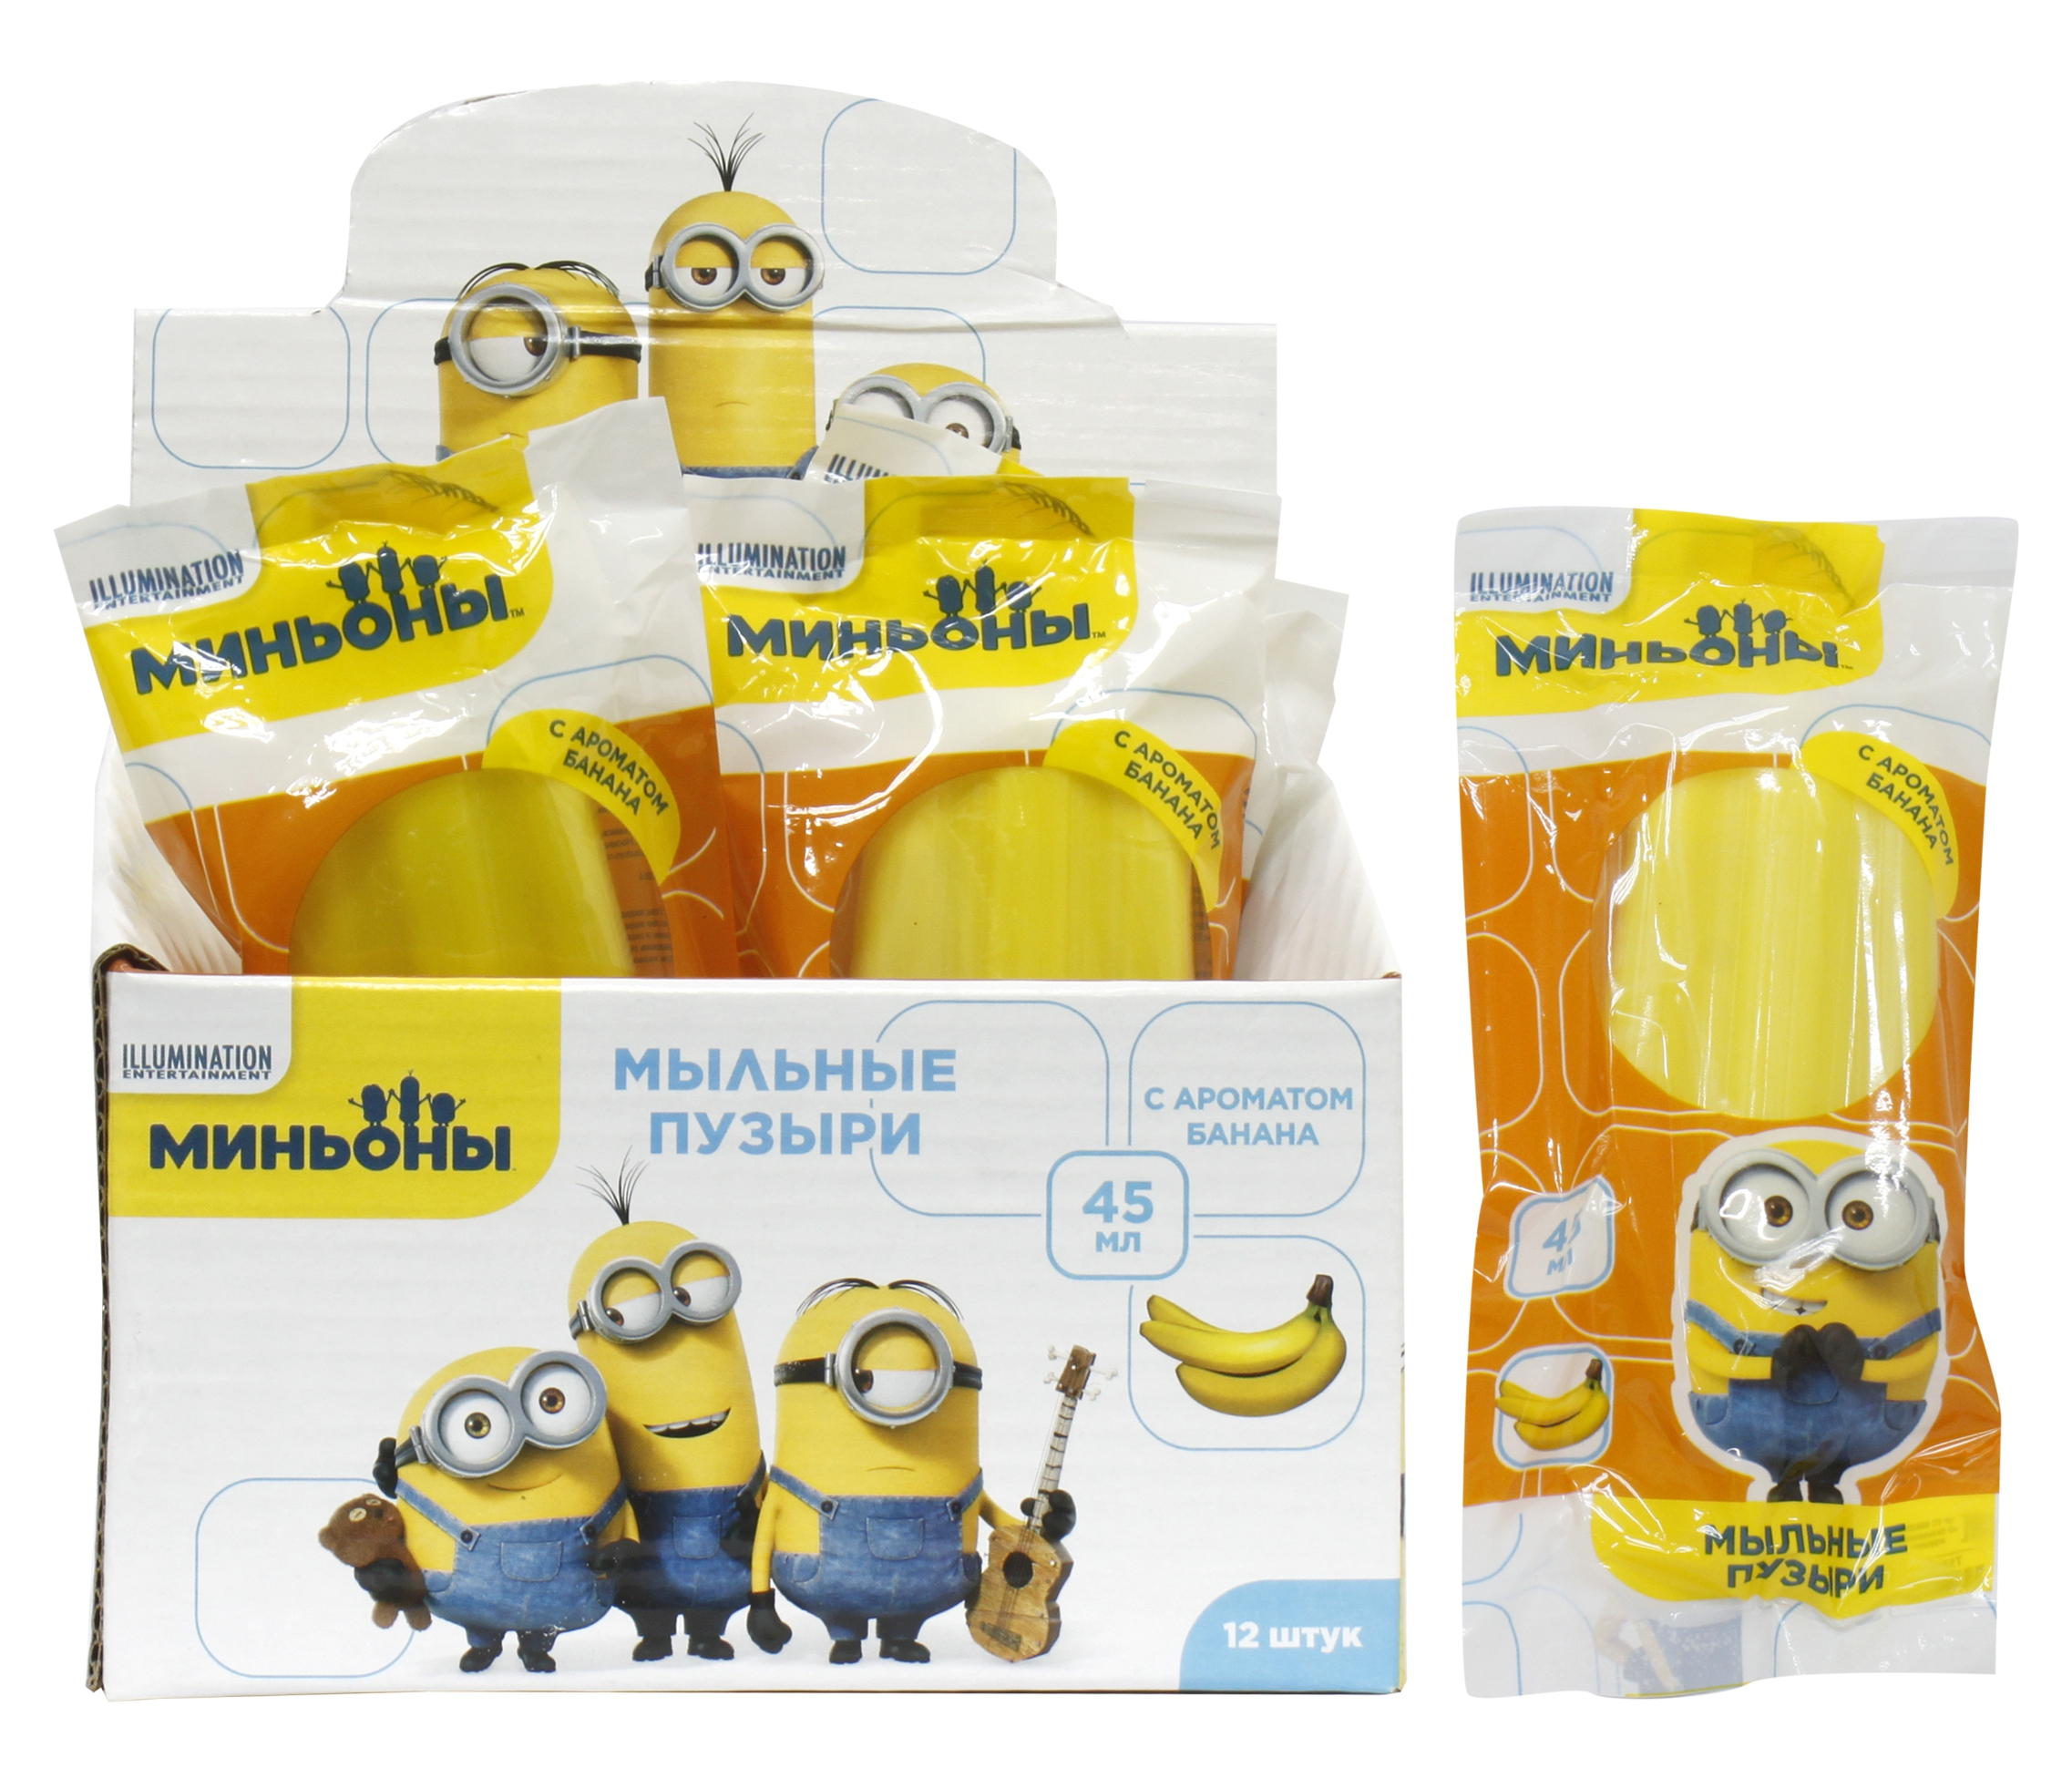 Мыльные пузыри 1toy Minions Эскимо на палочке с ароматом банана 45 мл. brand genuine amittari wet film thickness comb thickness gauge meter tester 25 2032um 1 80mil paint coating